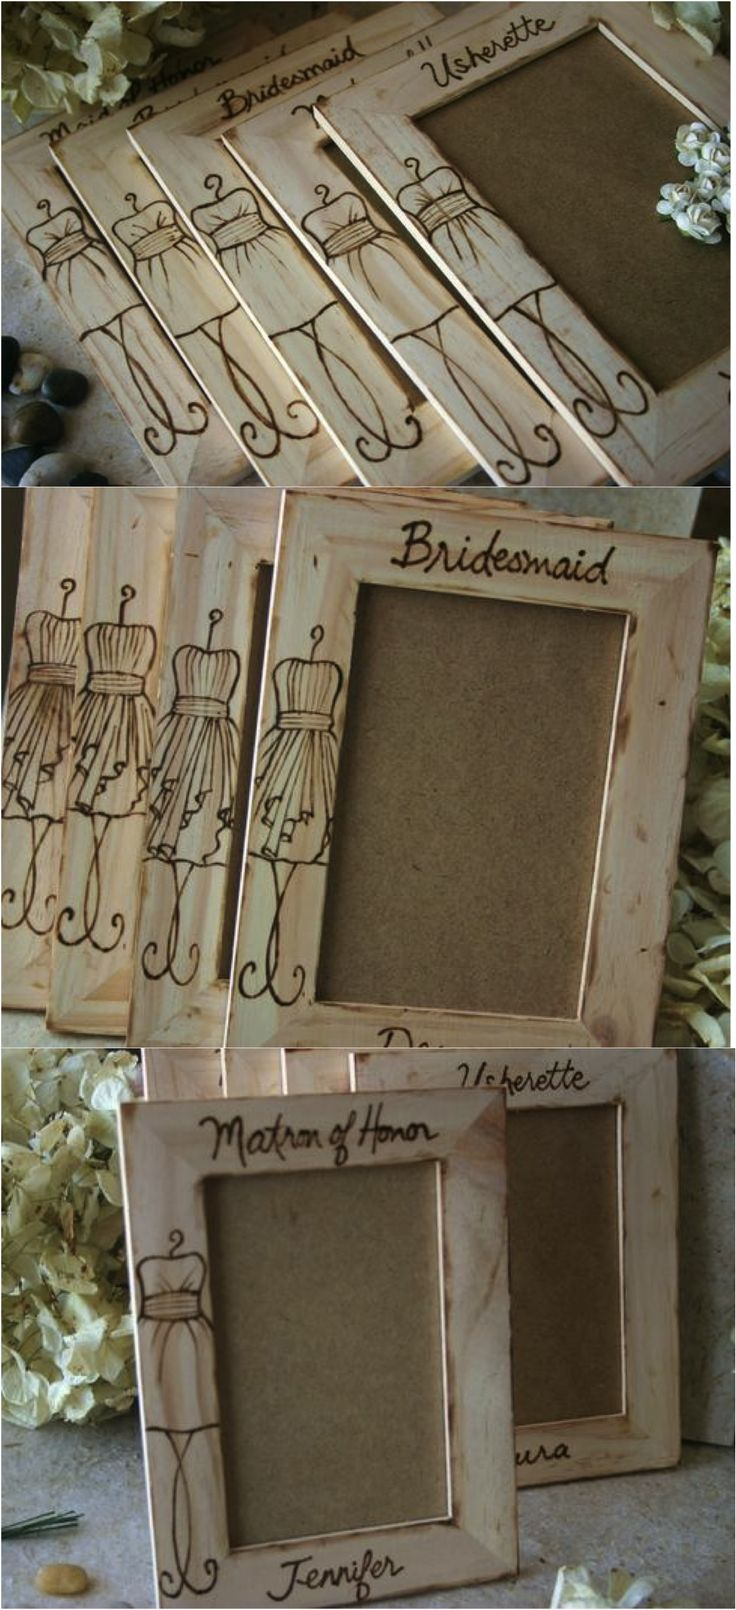 This is a customized gift with your bridesmaid dress hand engraved in a wood picture frame. | Made on Hatch.co